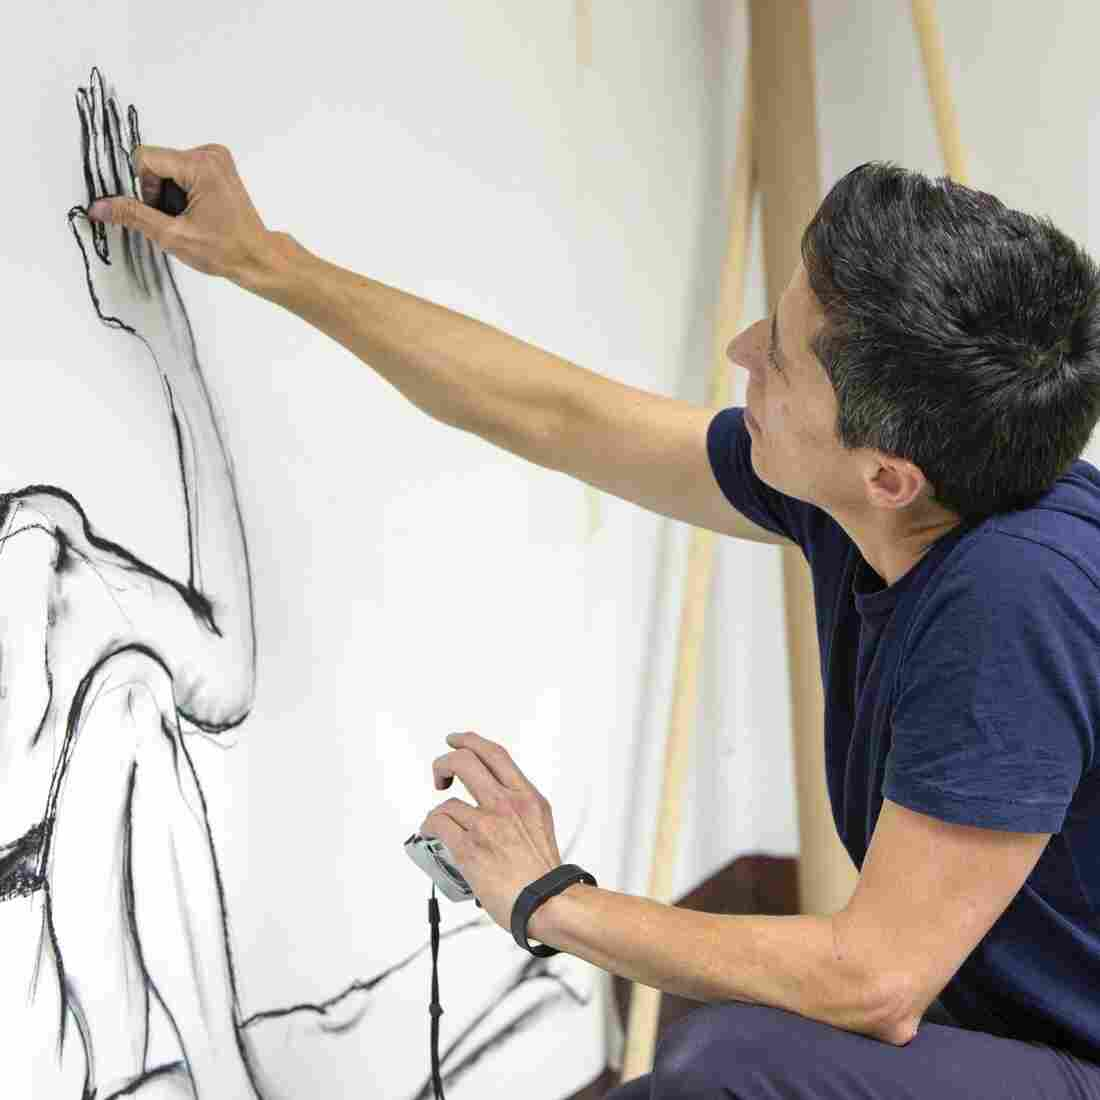 U.S. cartoonist Alison Bechdel works Sept. 2 in her studio at the castle of Civitella Ranieri, central Italy.